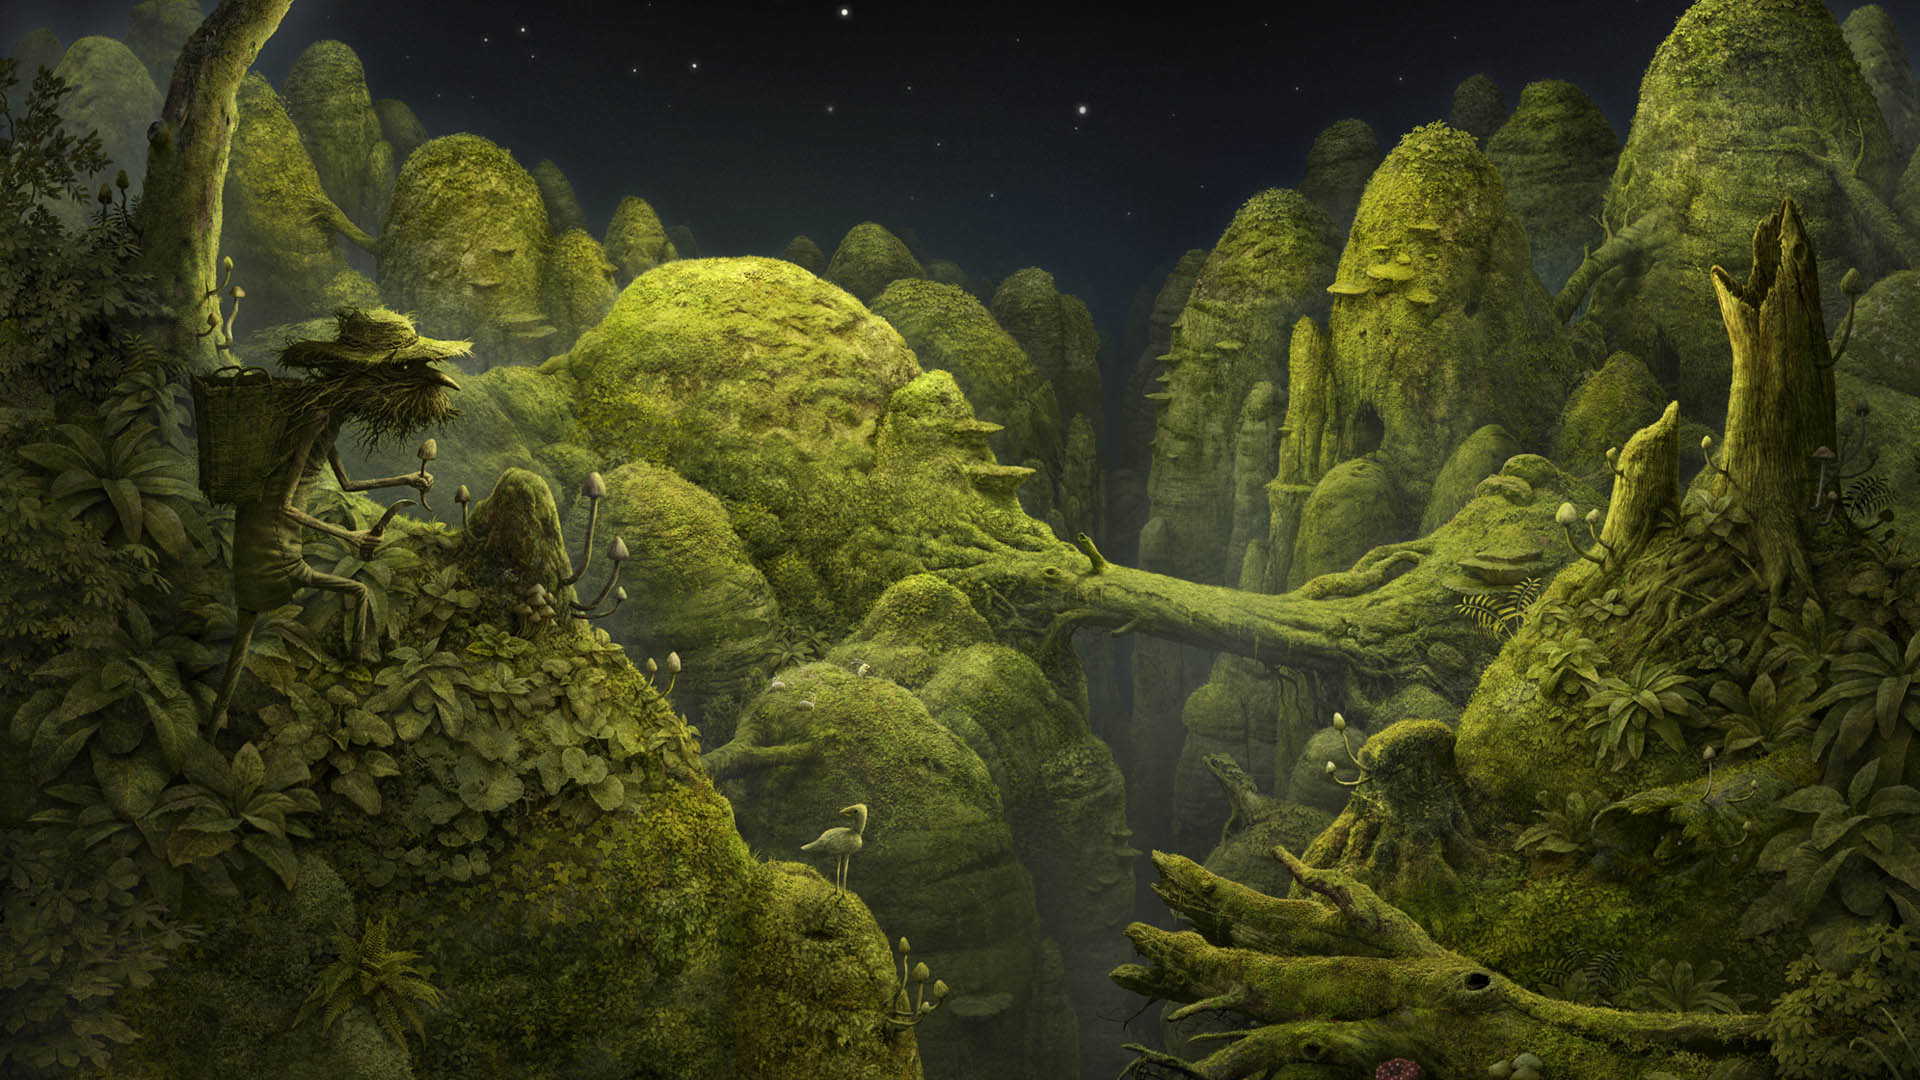 Mythical Creatures In The Fall Wallpaper Showcase Samorost 3